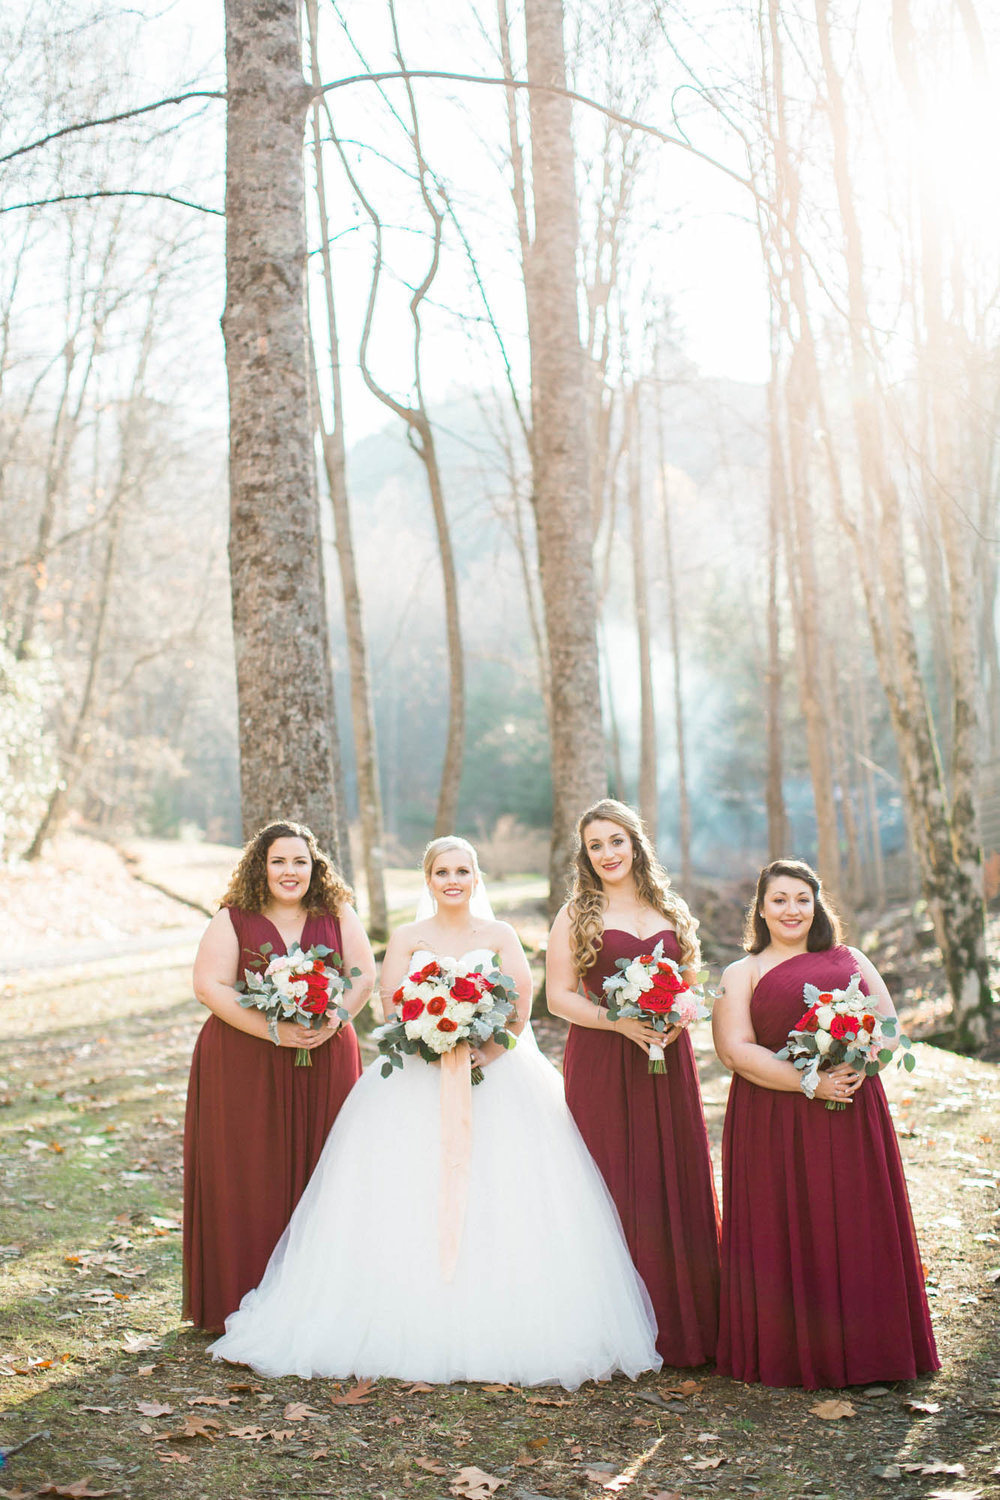 Bridesmaids and bride mountain wedding Andrews, NC Charlotte Photographer